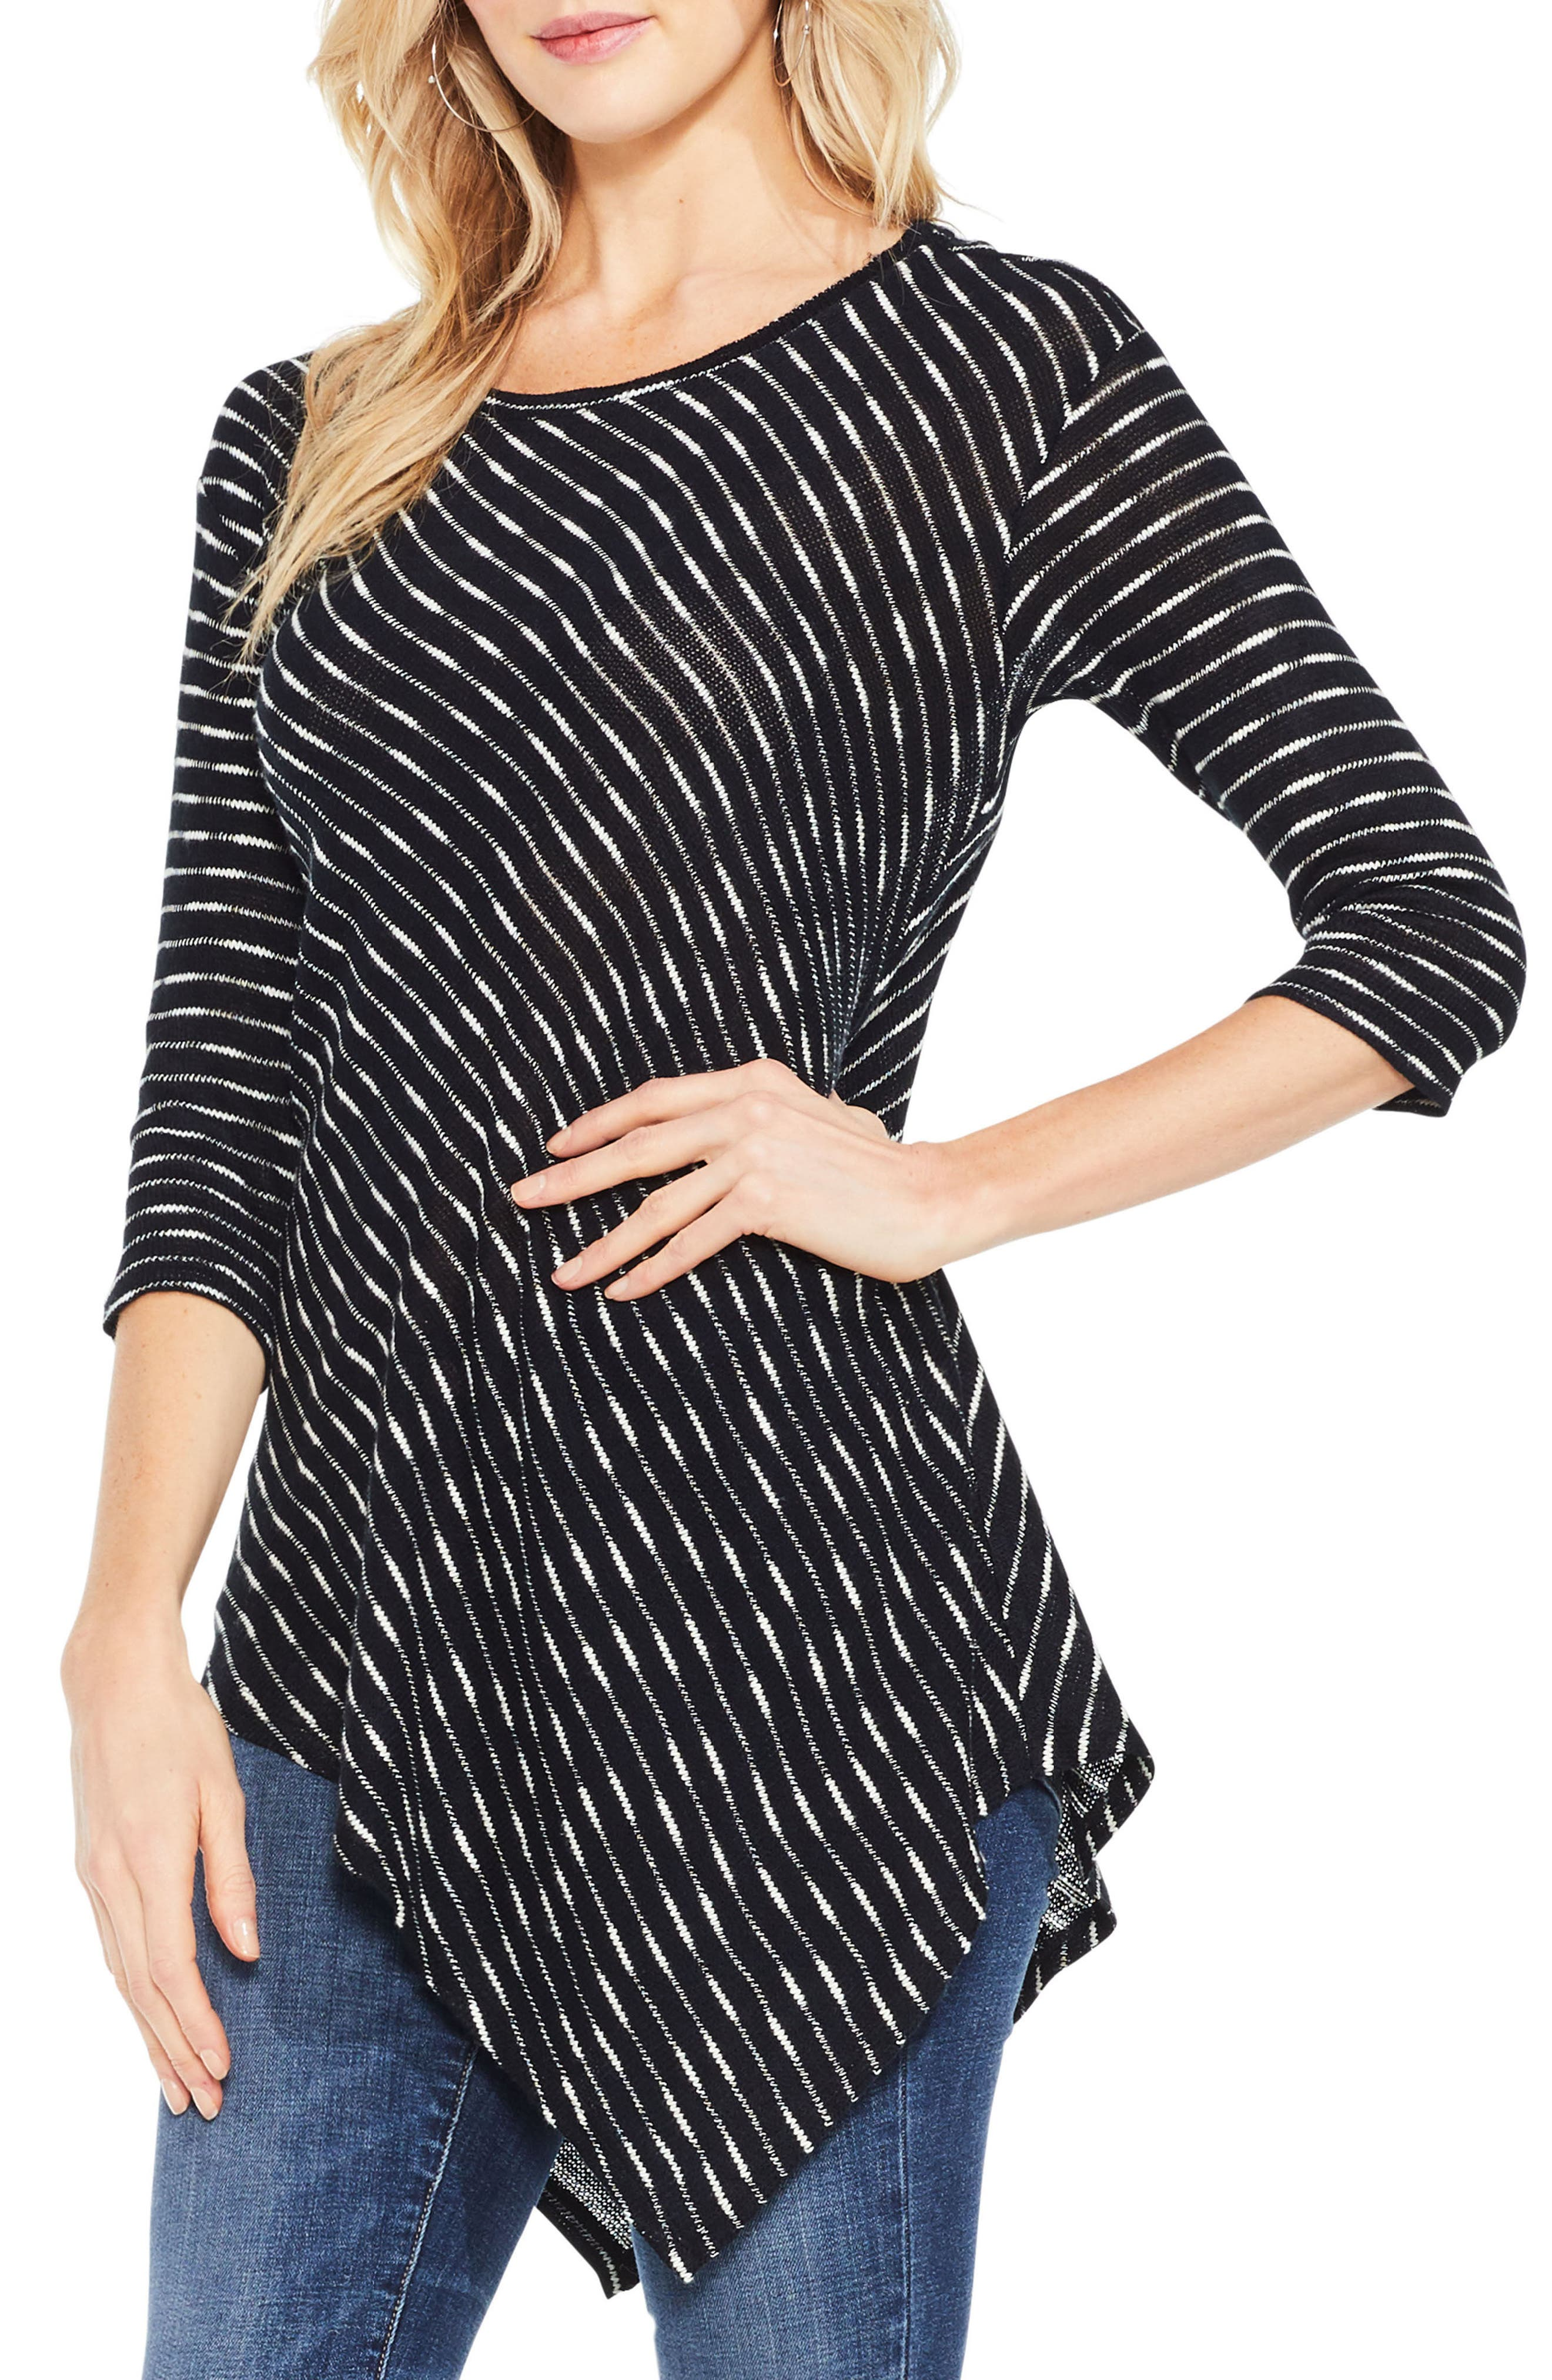 Alternate Image 1 Selected - Two by Vince Camuto Asymmetrical Stripe Top